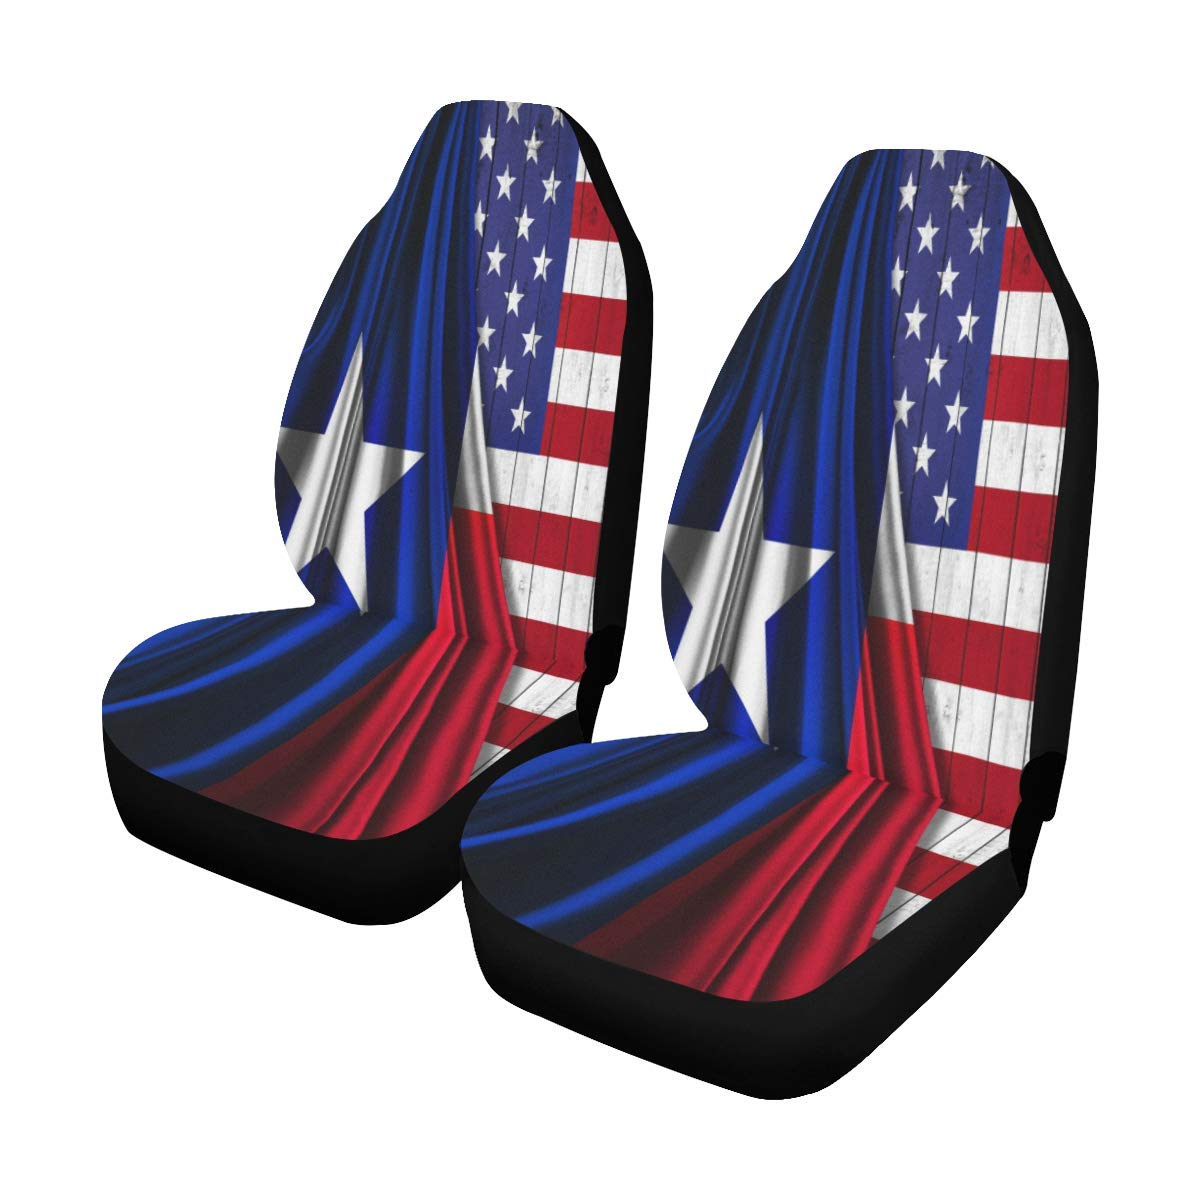 INTERESTPRINT Collection of USA States Flag Car Seat Covers Set of 2 Vehicle Seat Protector Car Covers for Auto Cars Sedan SUV